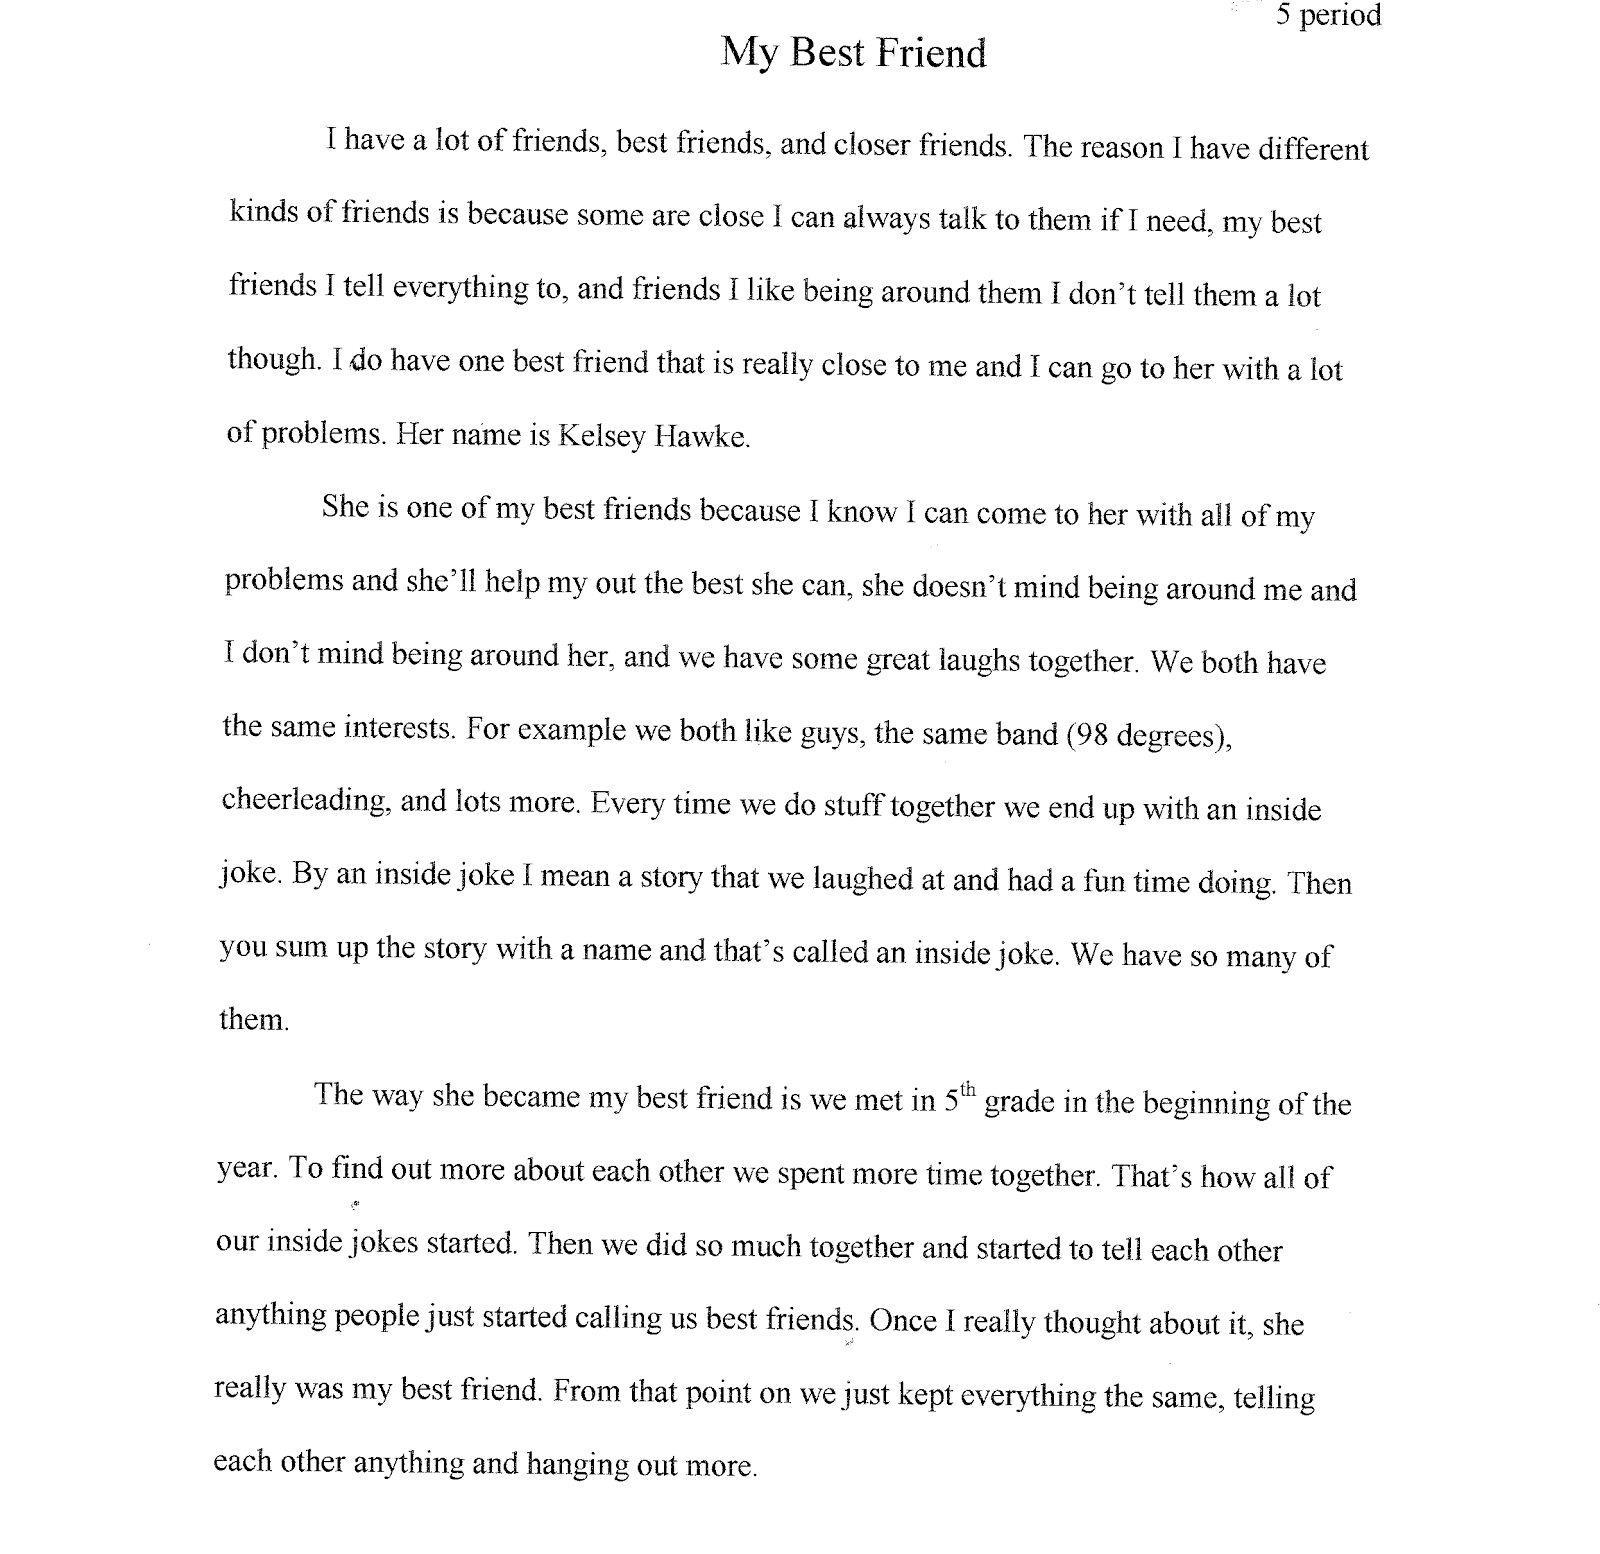 003 Essay Example 6th Bestfriend Post1 My Best Friend In Sensational English For Class 8 Pdf 2 Full